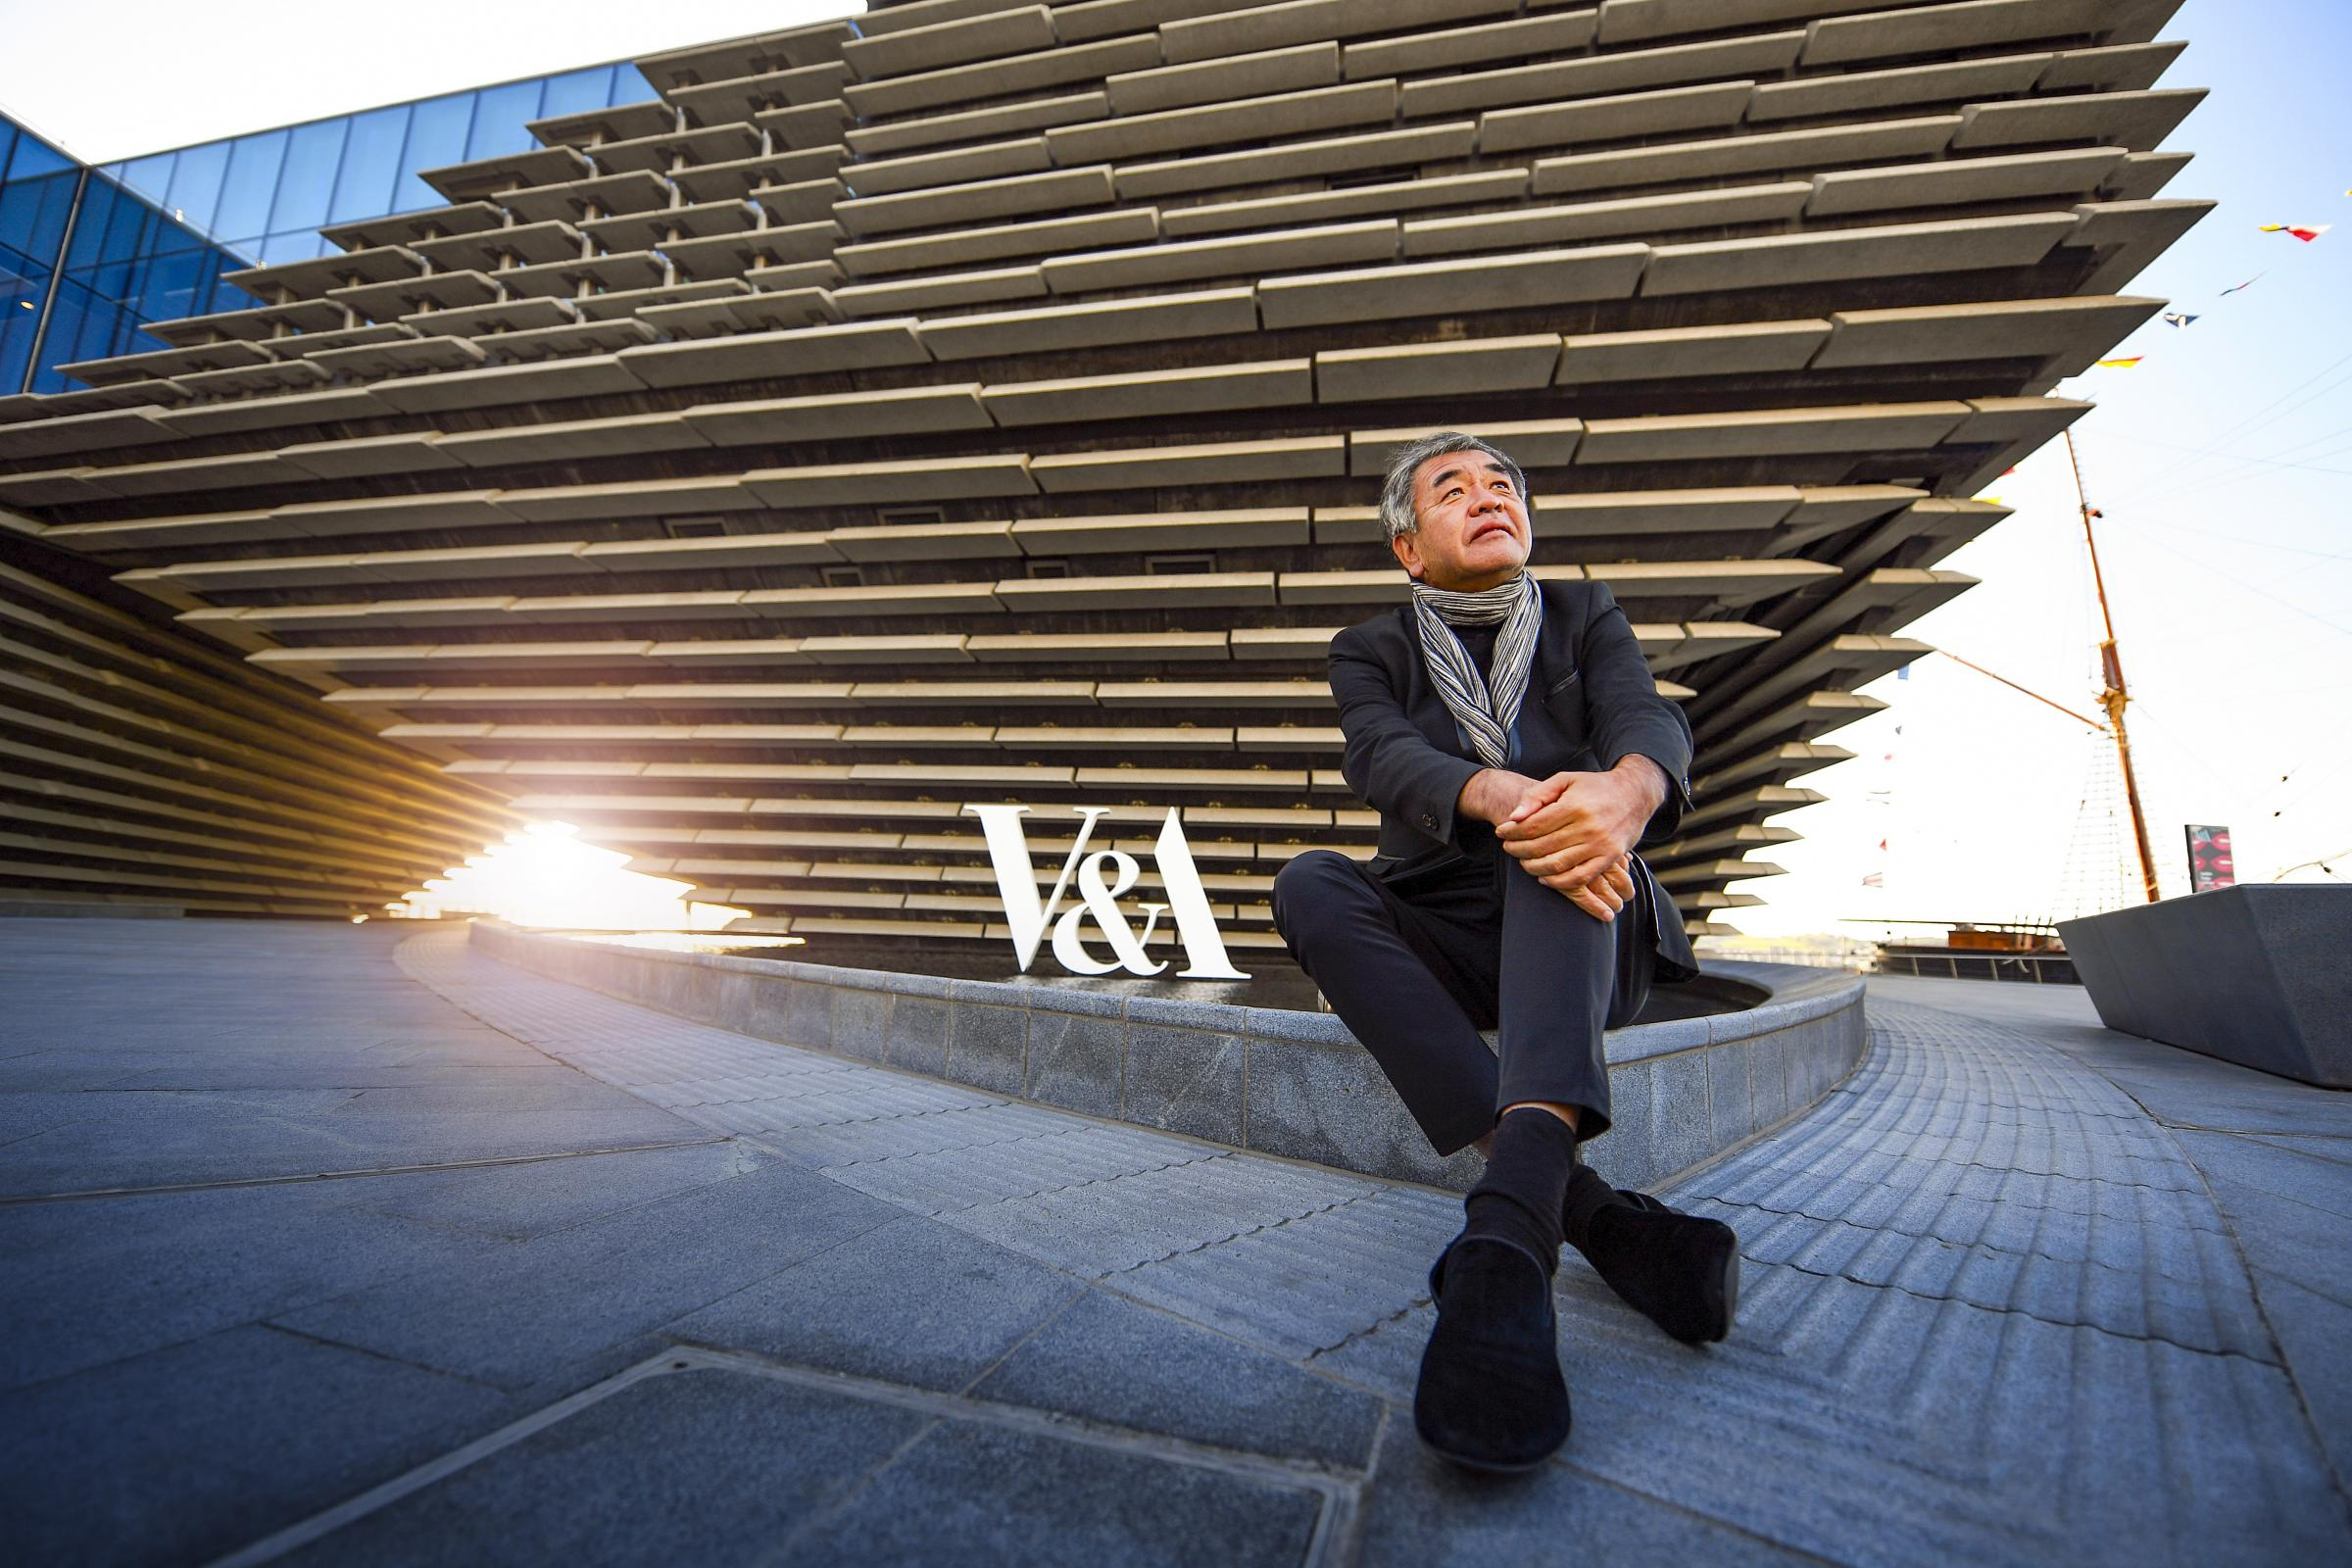 Kengo Kuma, the architecht who designed the new V&A museum of Design